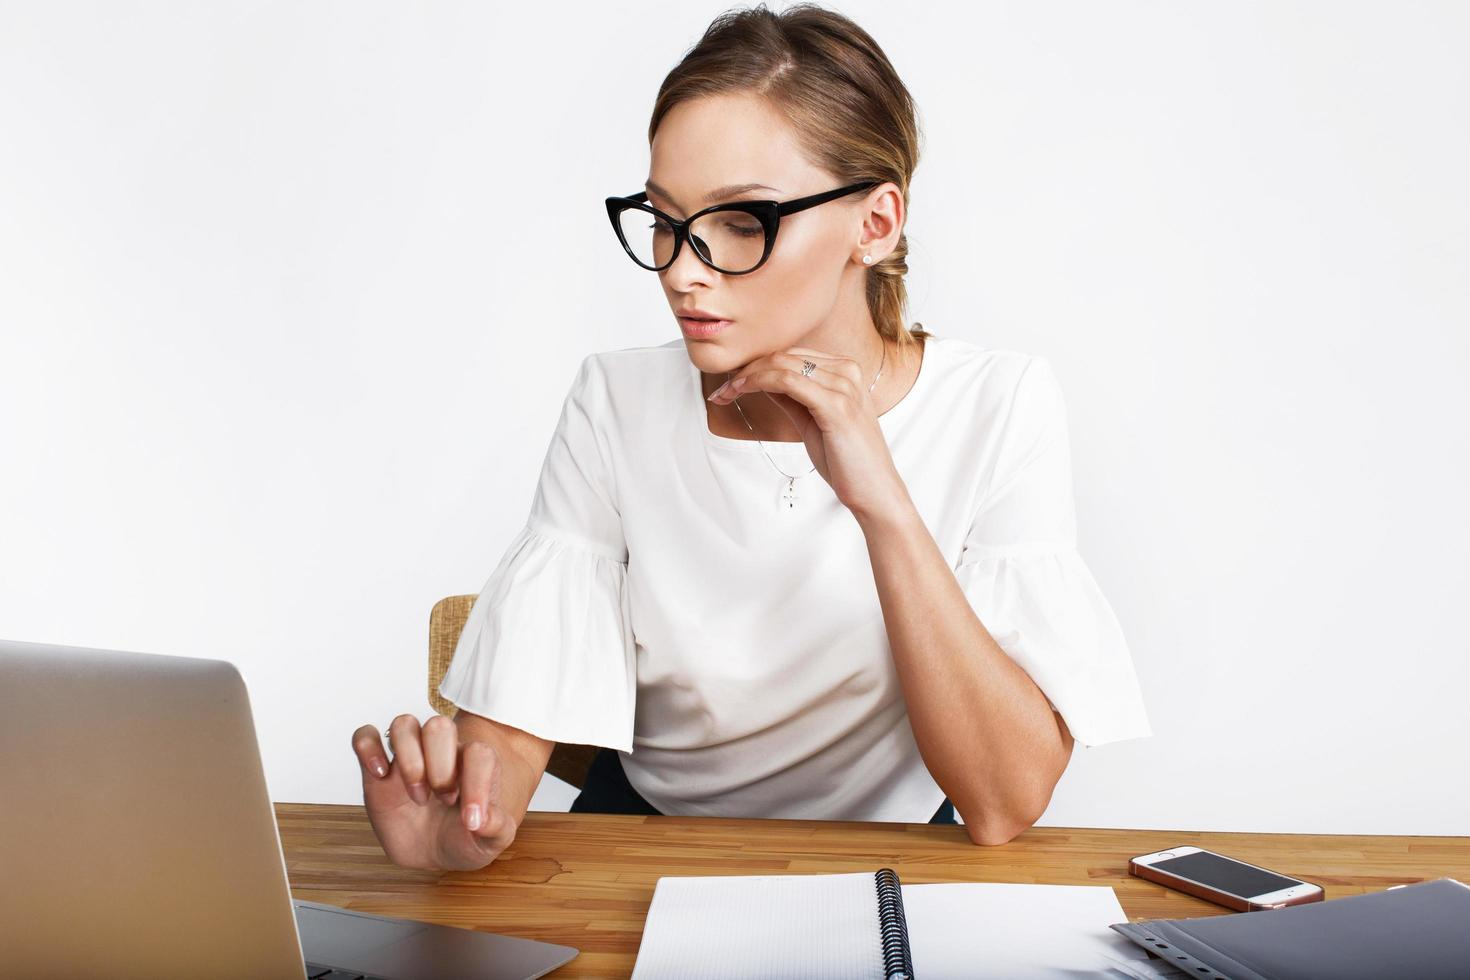 Thoughtful woman works on laptop at desk on white background photo